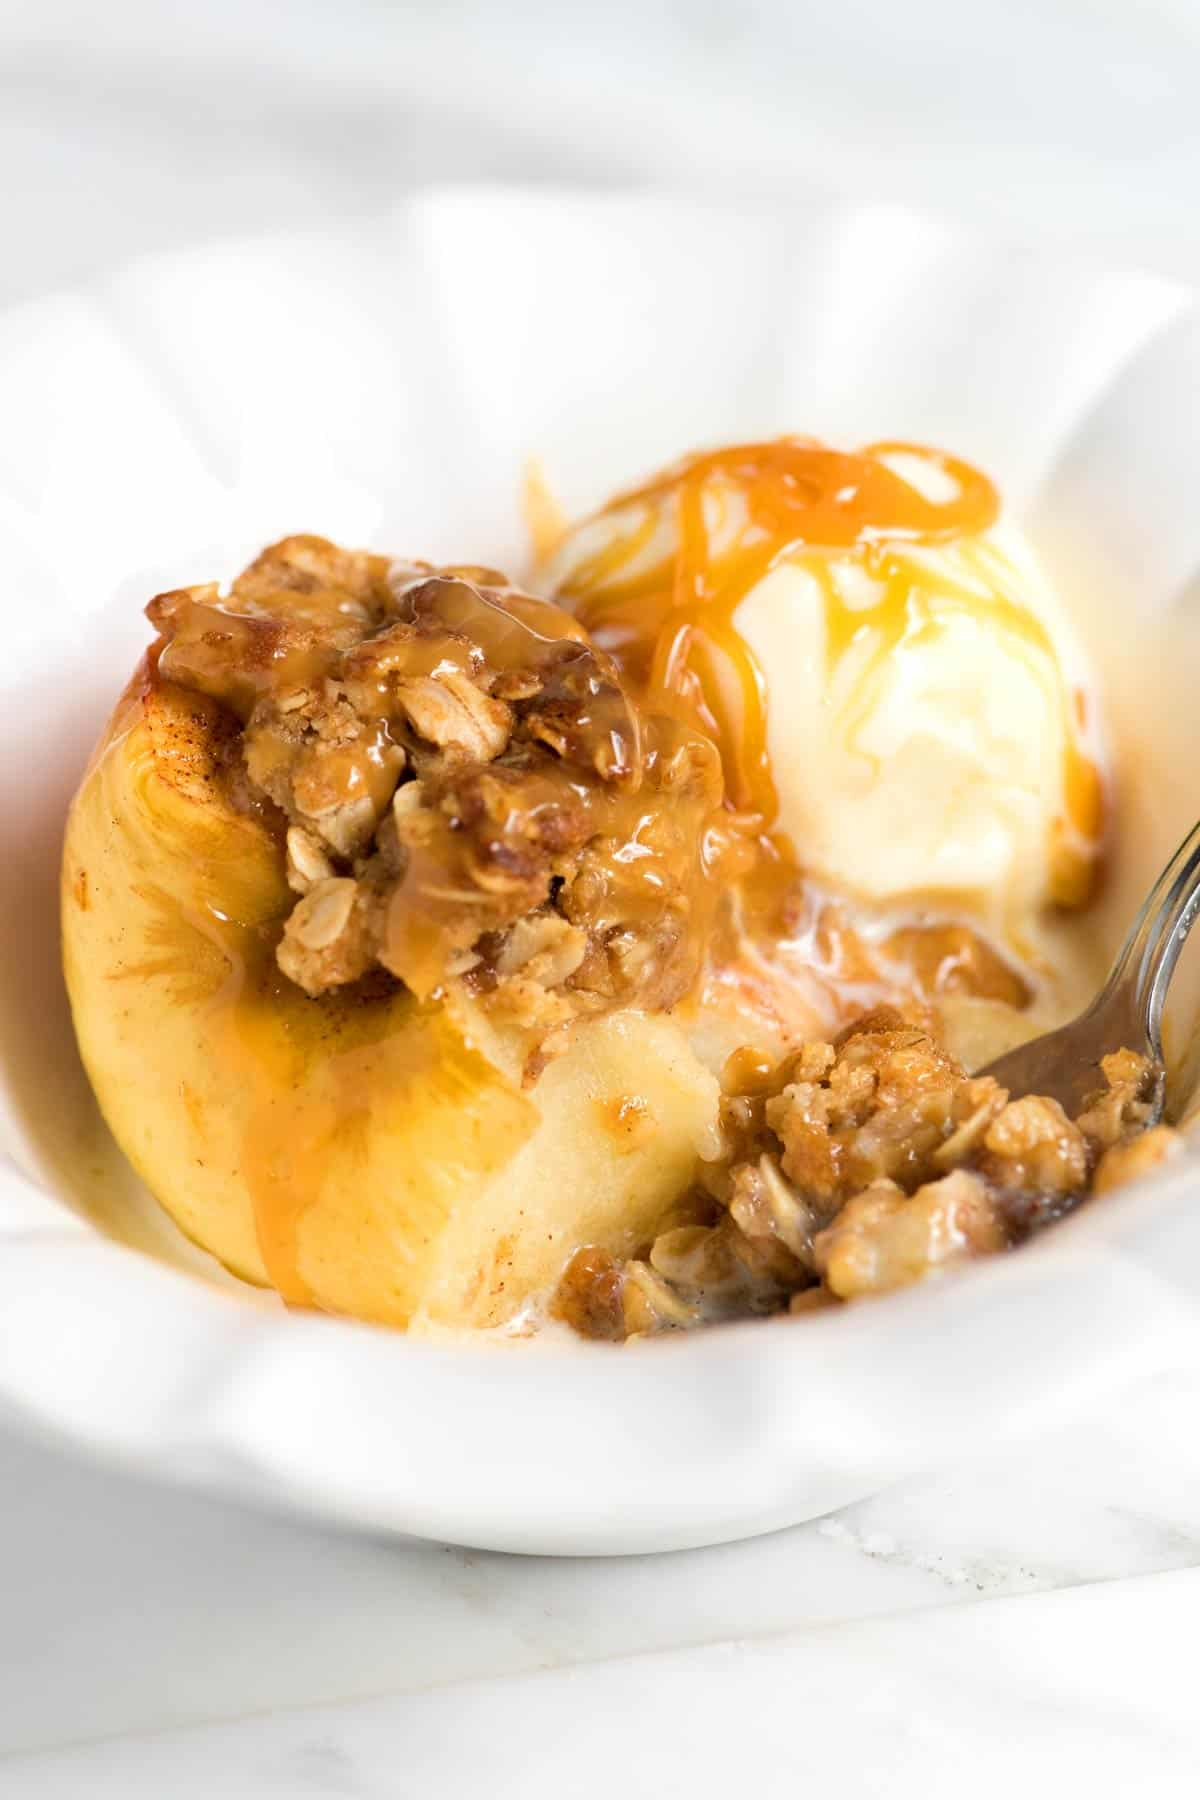 Serve cinnamon baked apples with ice cream and caramel sauce!